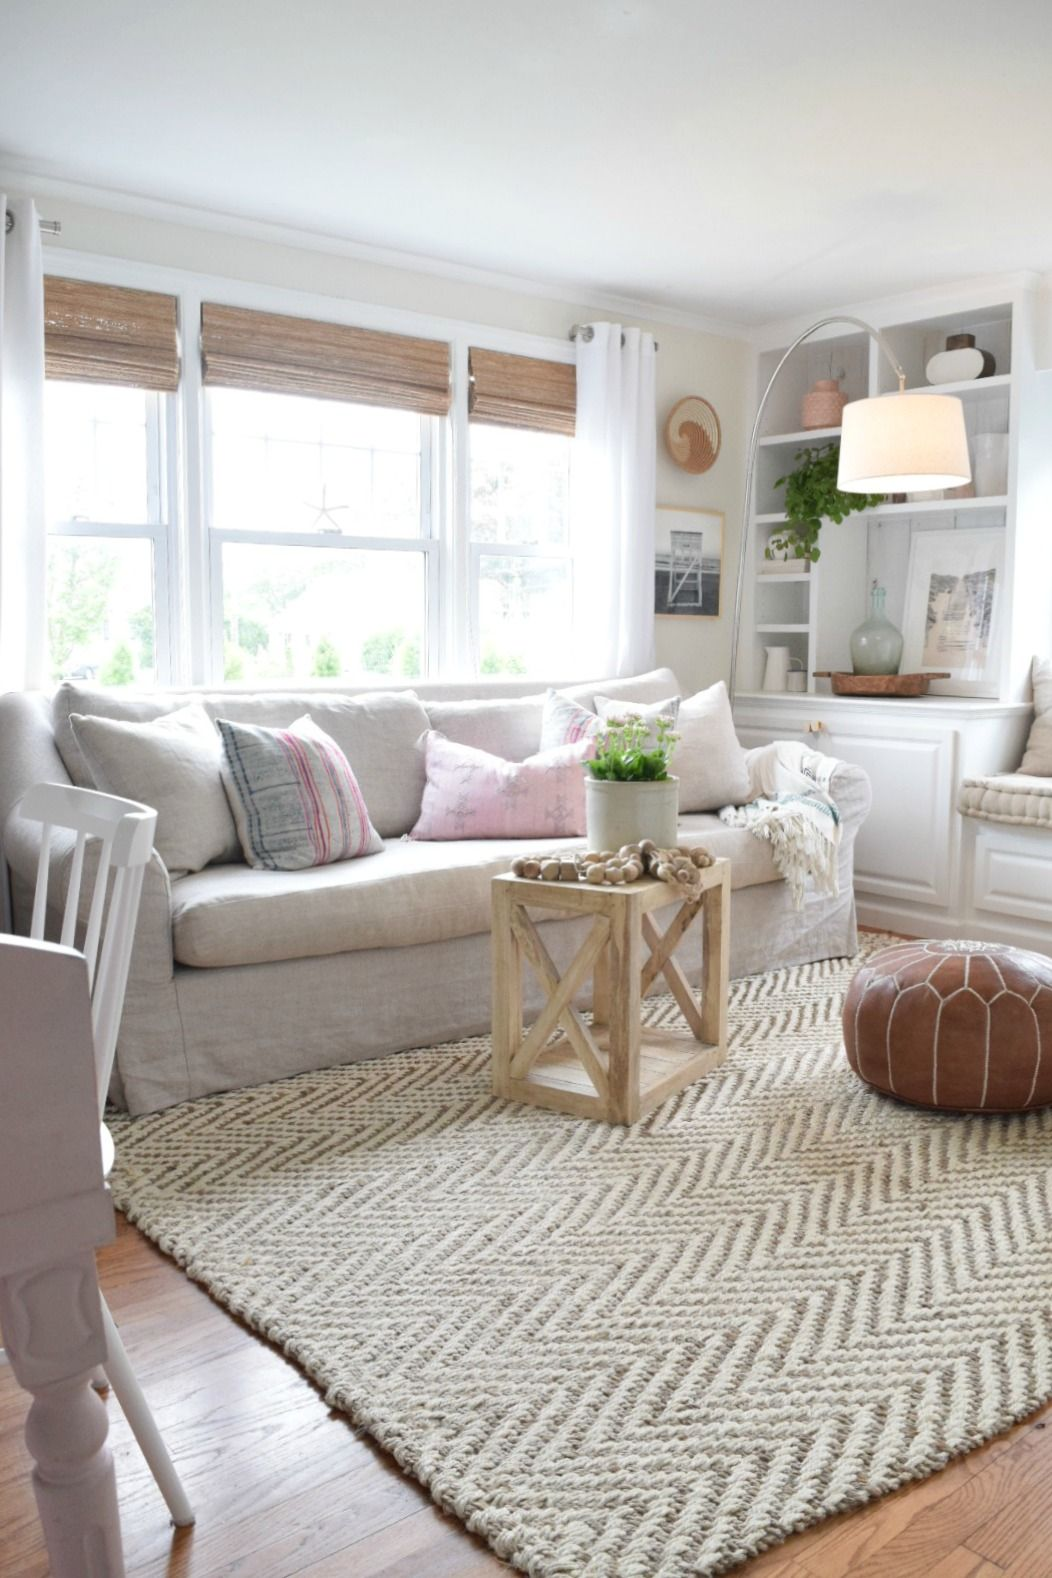 Jute Rug Review In Our Living Room Nesting With Grace Rugs In Living Room Jute Rug Living Room Family Room Design